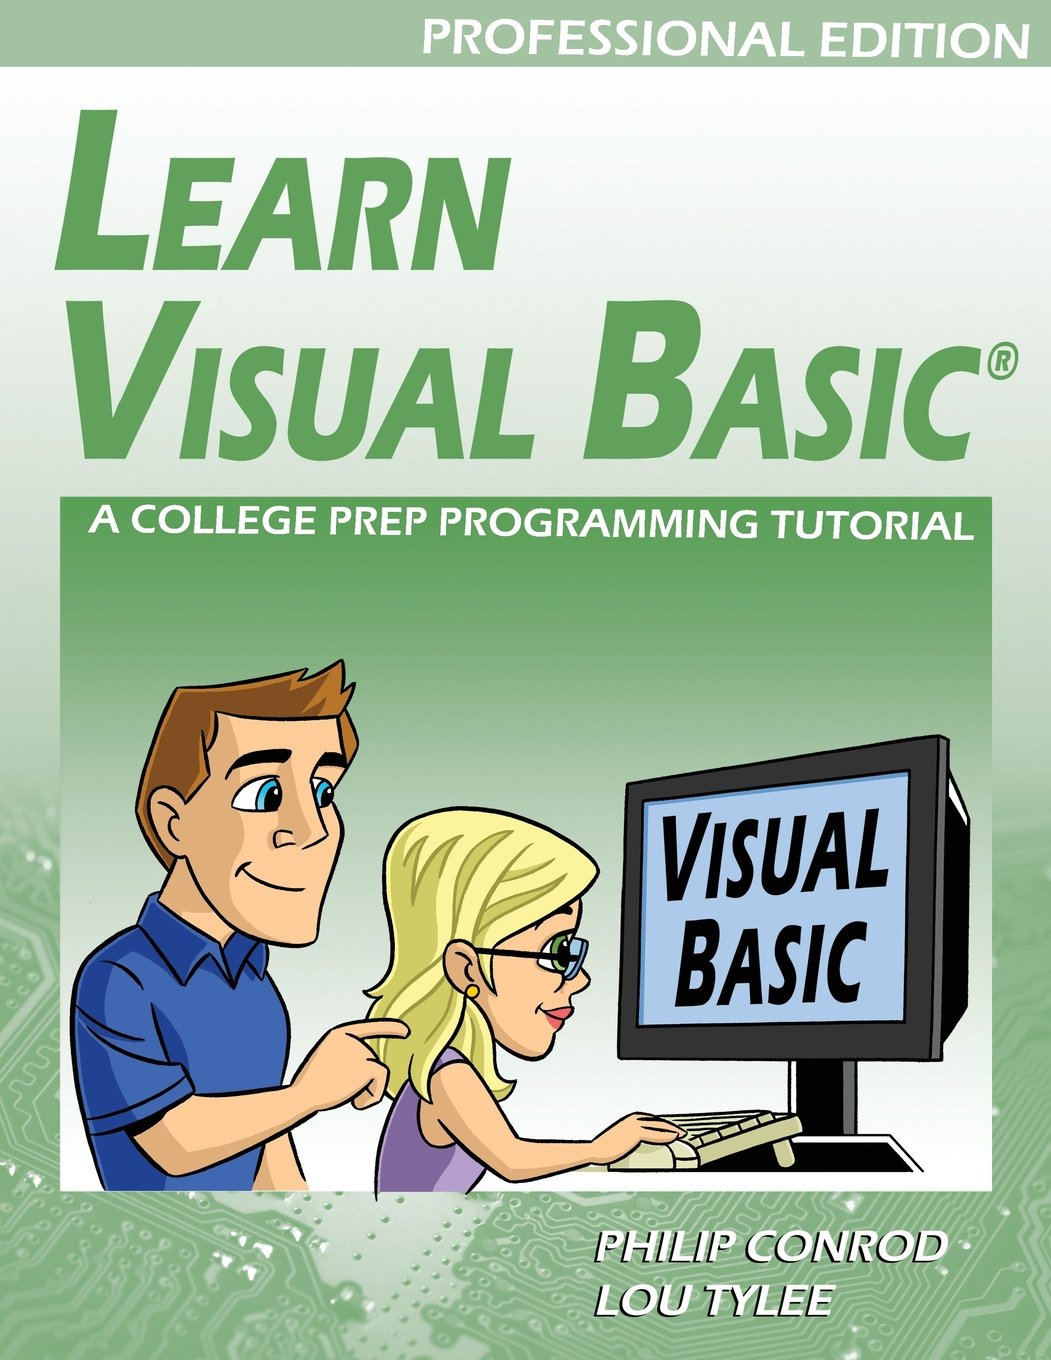 Learn Visual Basic A College Prep Programming Tutorial by